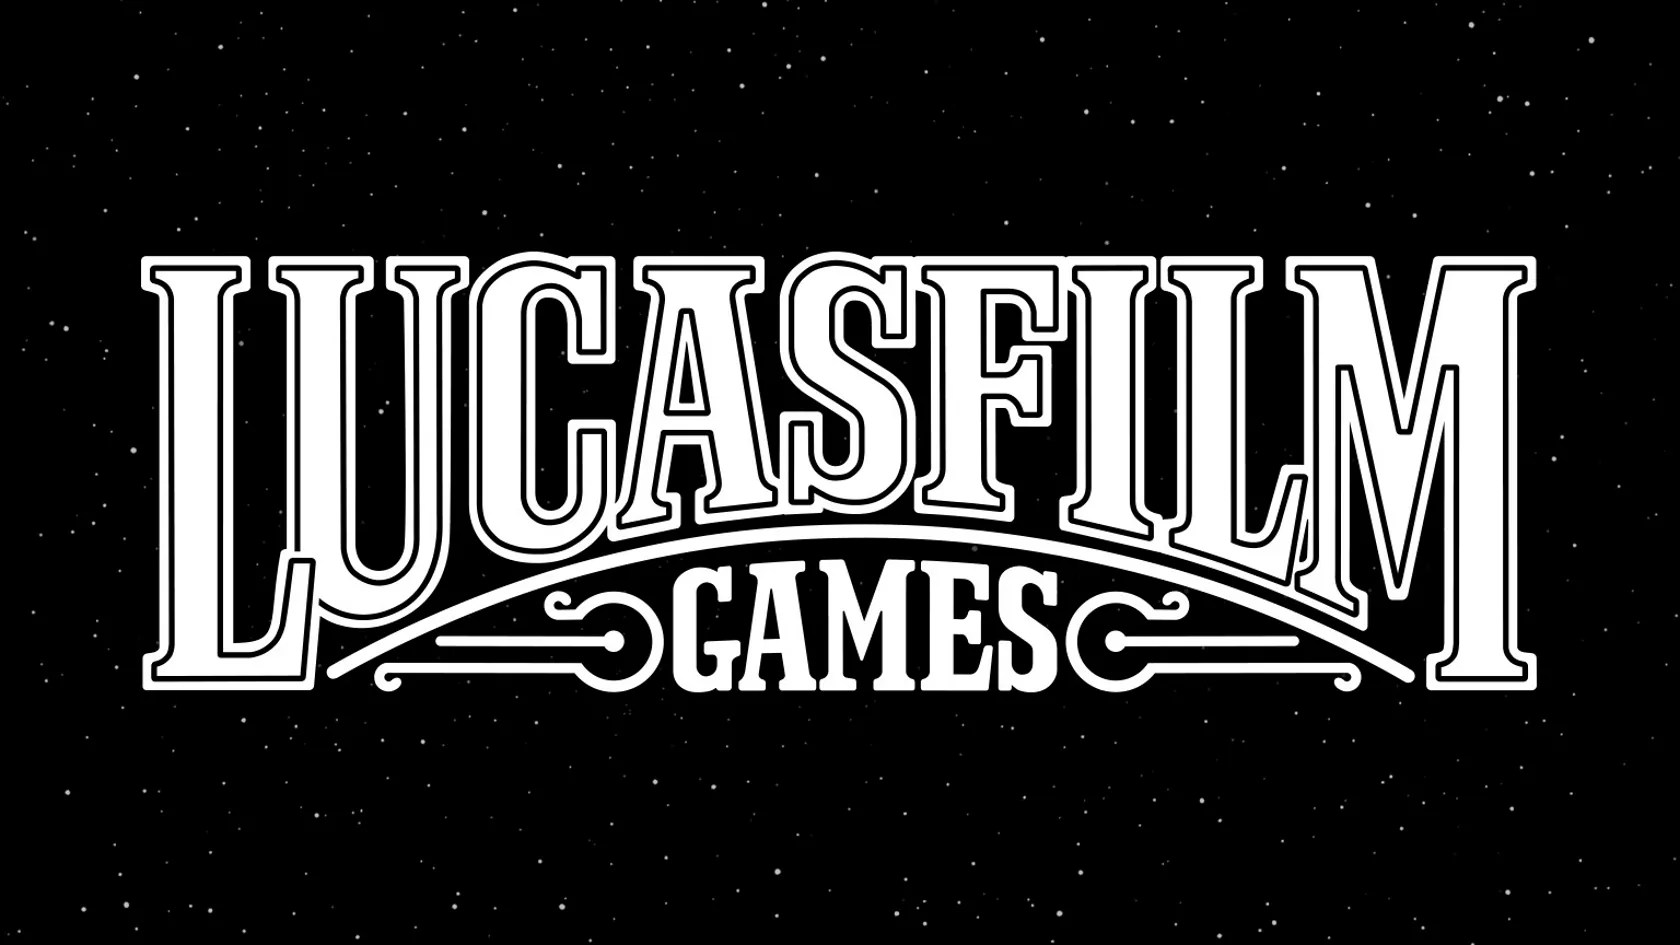 Disney revives the Lucasfilm Games brand to begin a 'new era' of Star Wars titles